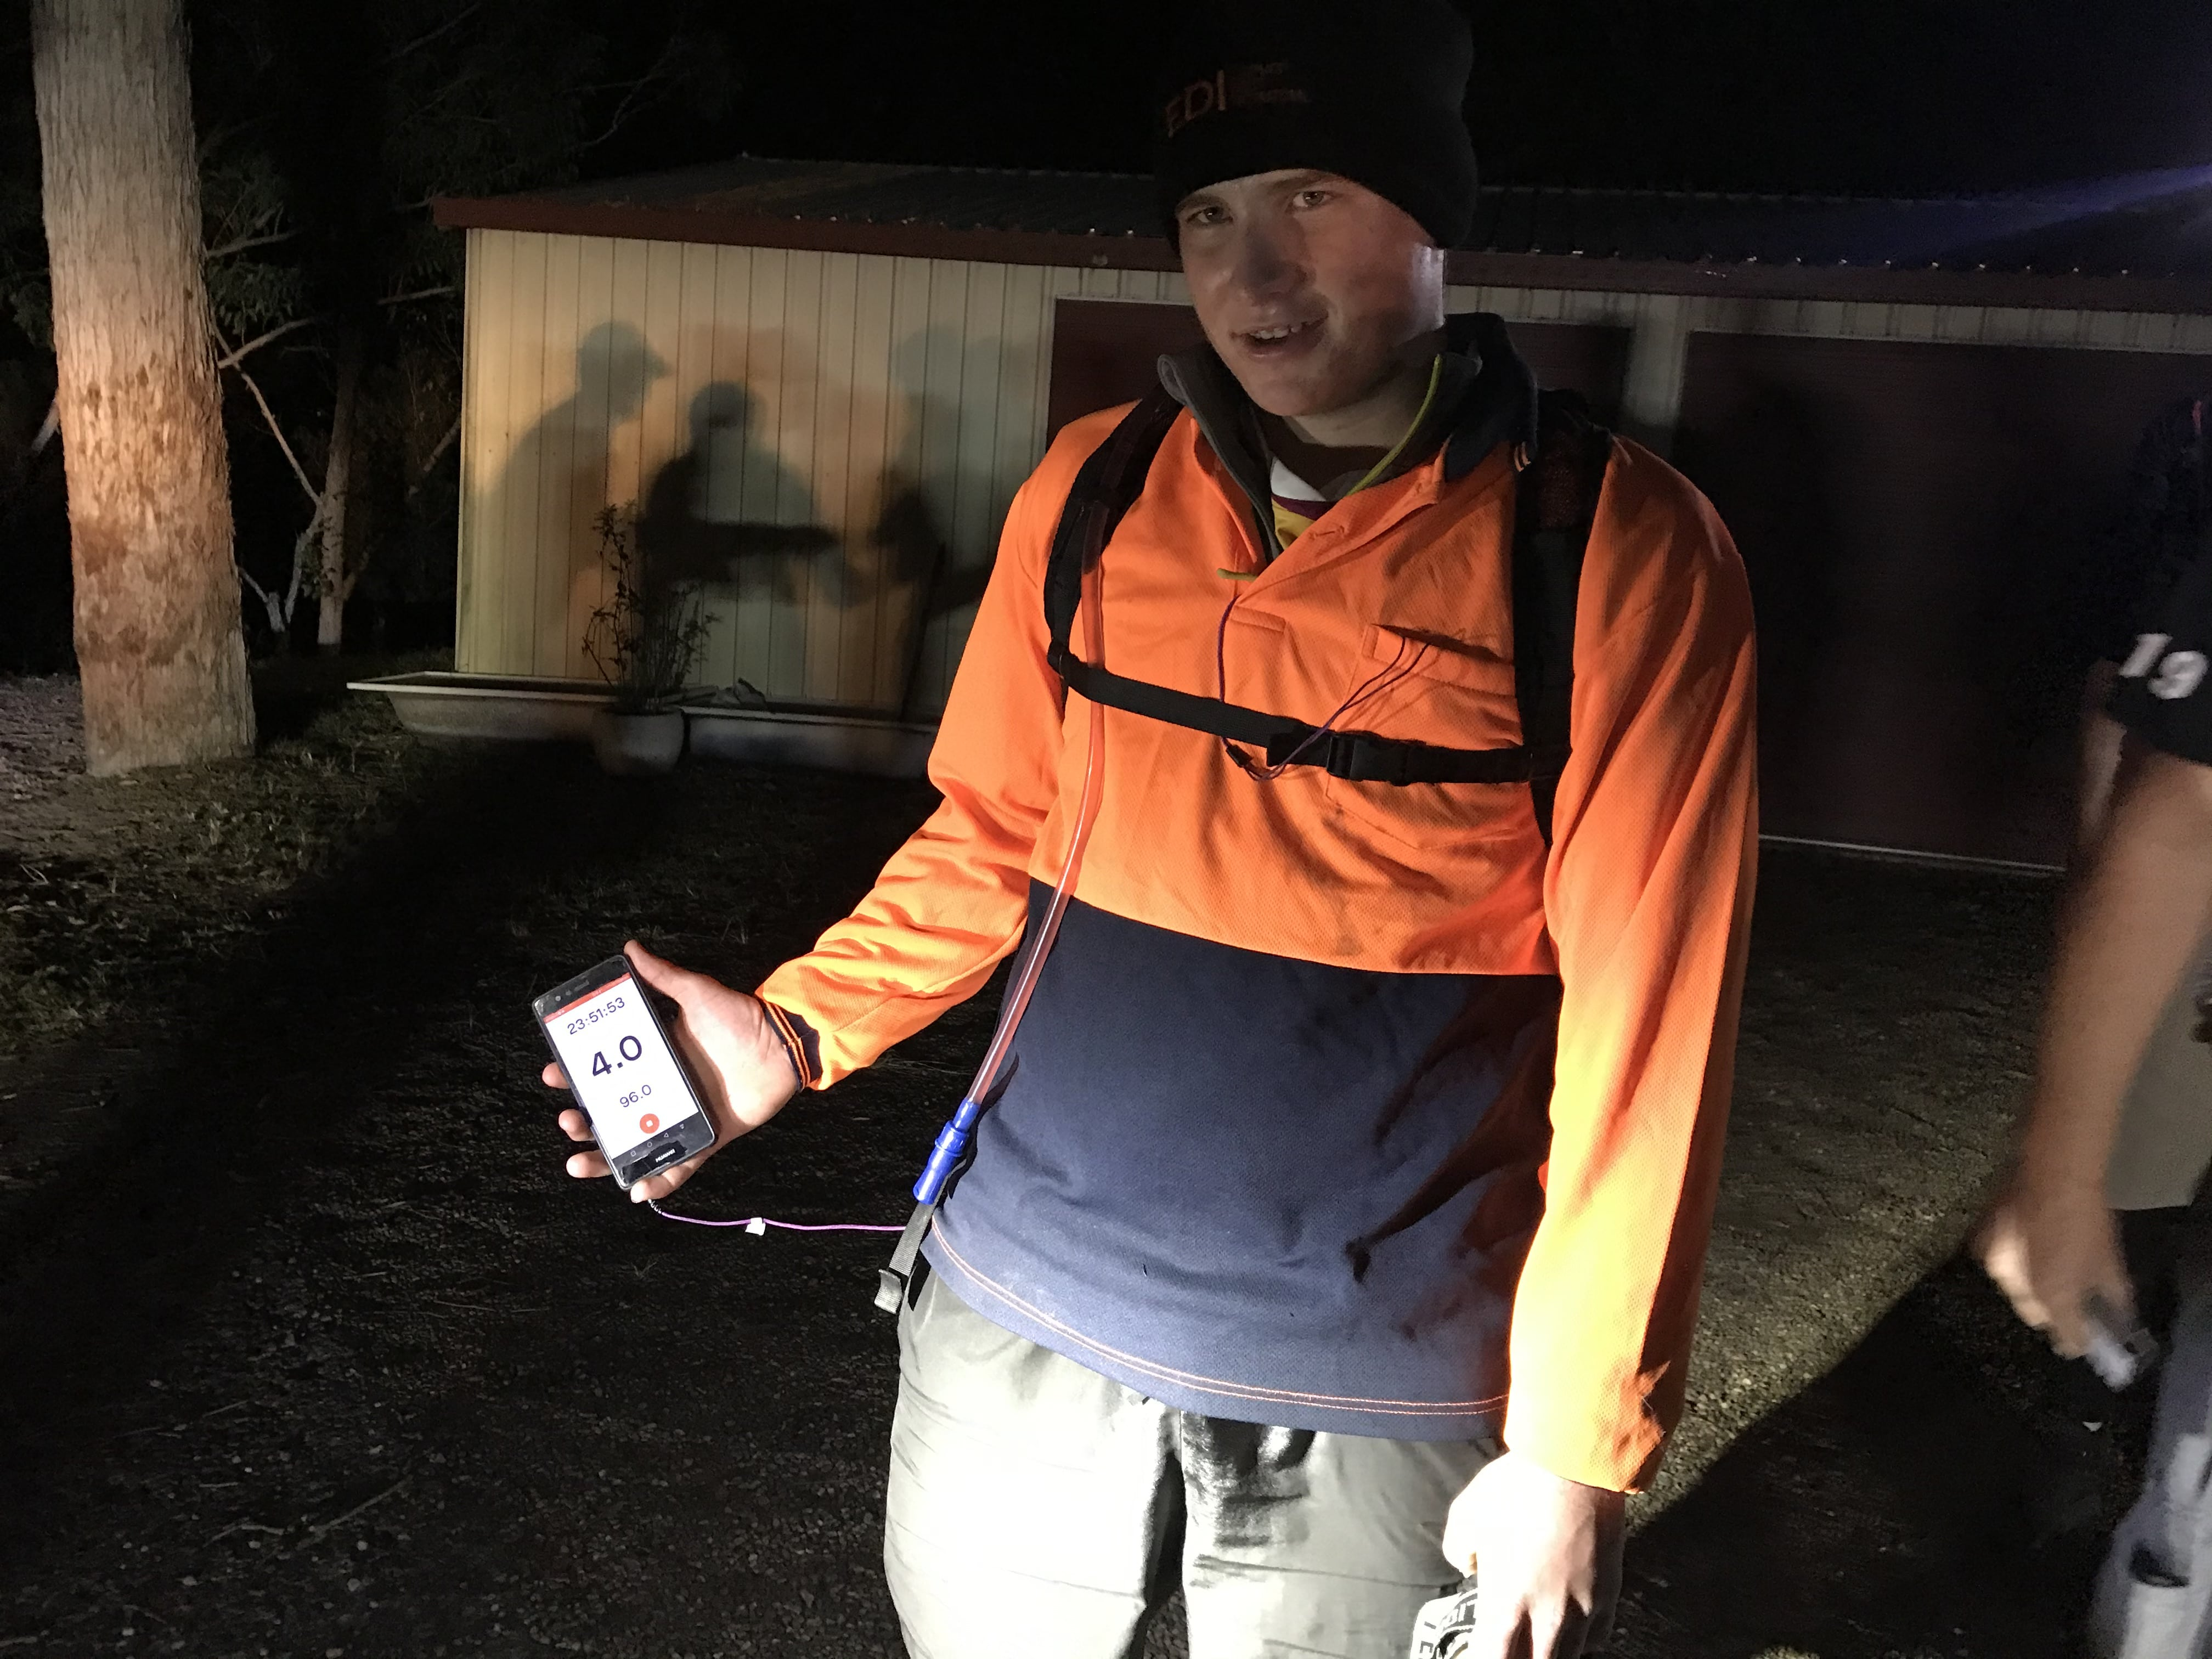 Sam Barham holding up his phone showing the Strava app which indicates he has walked 96kms under 24 hours